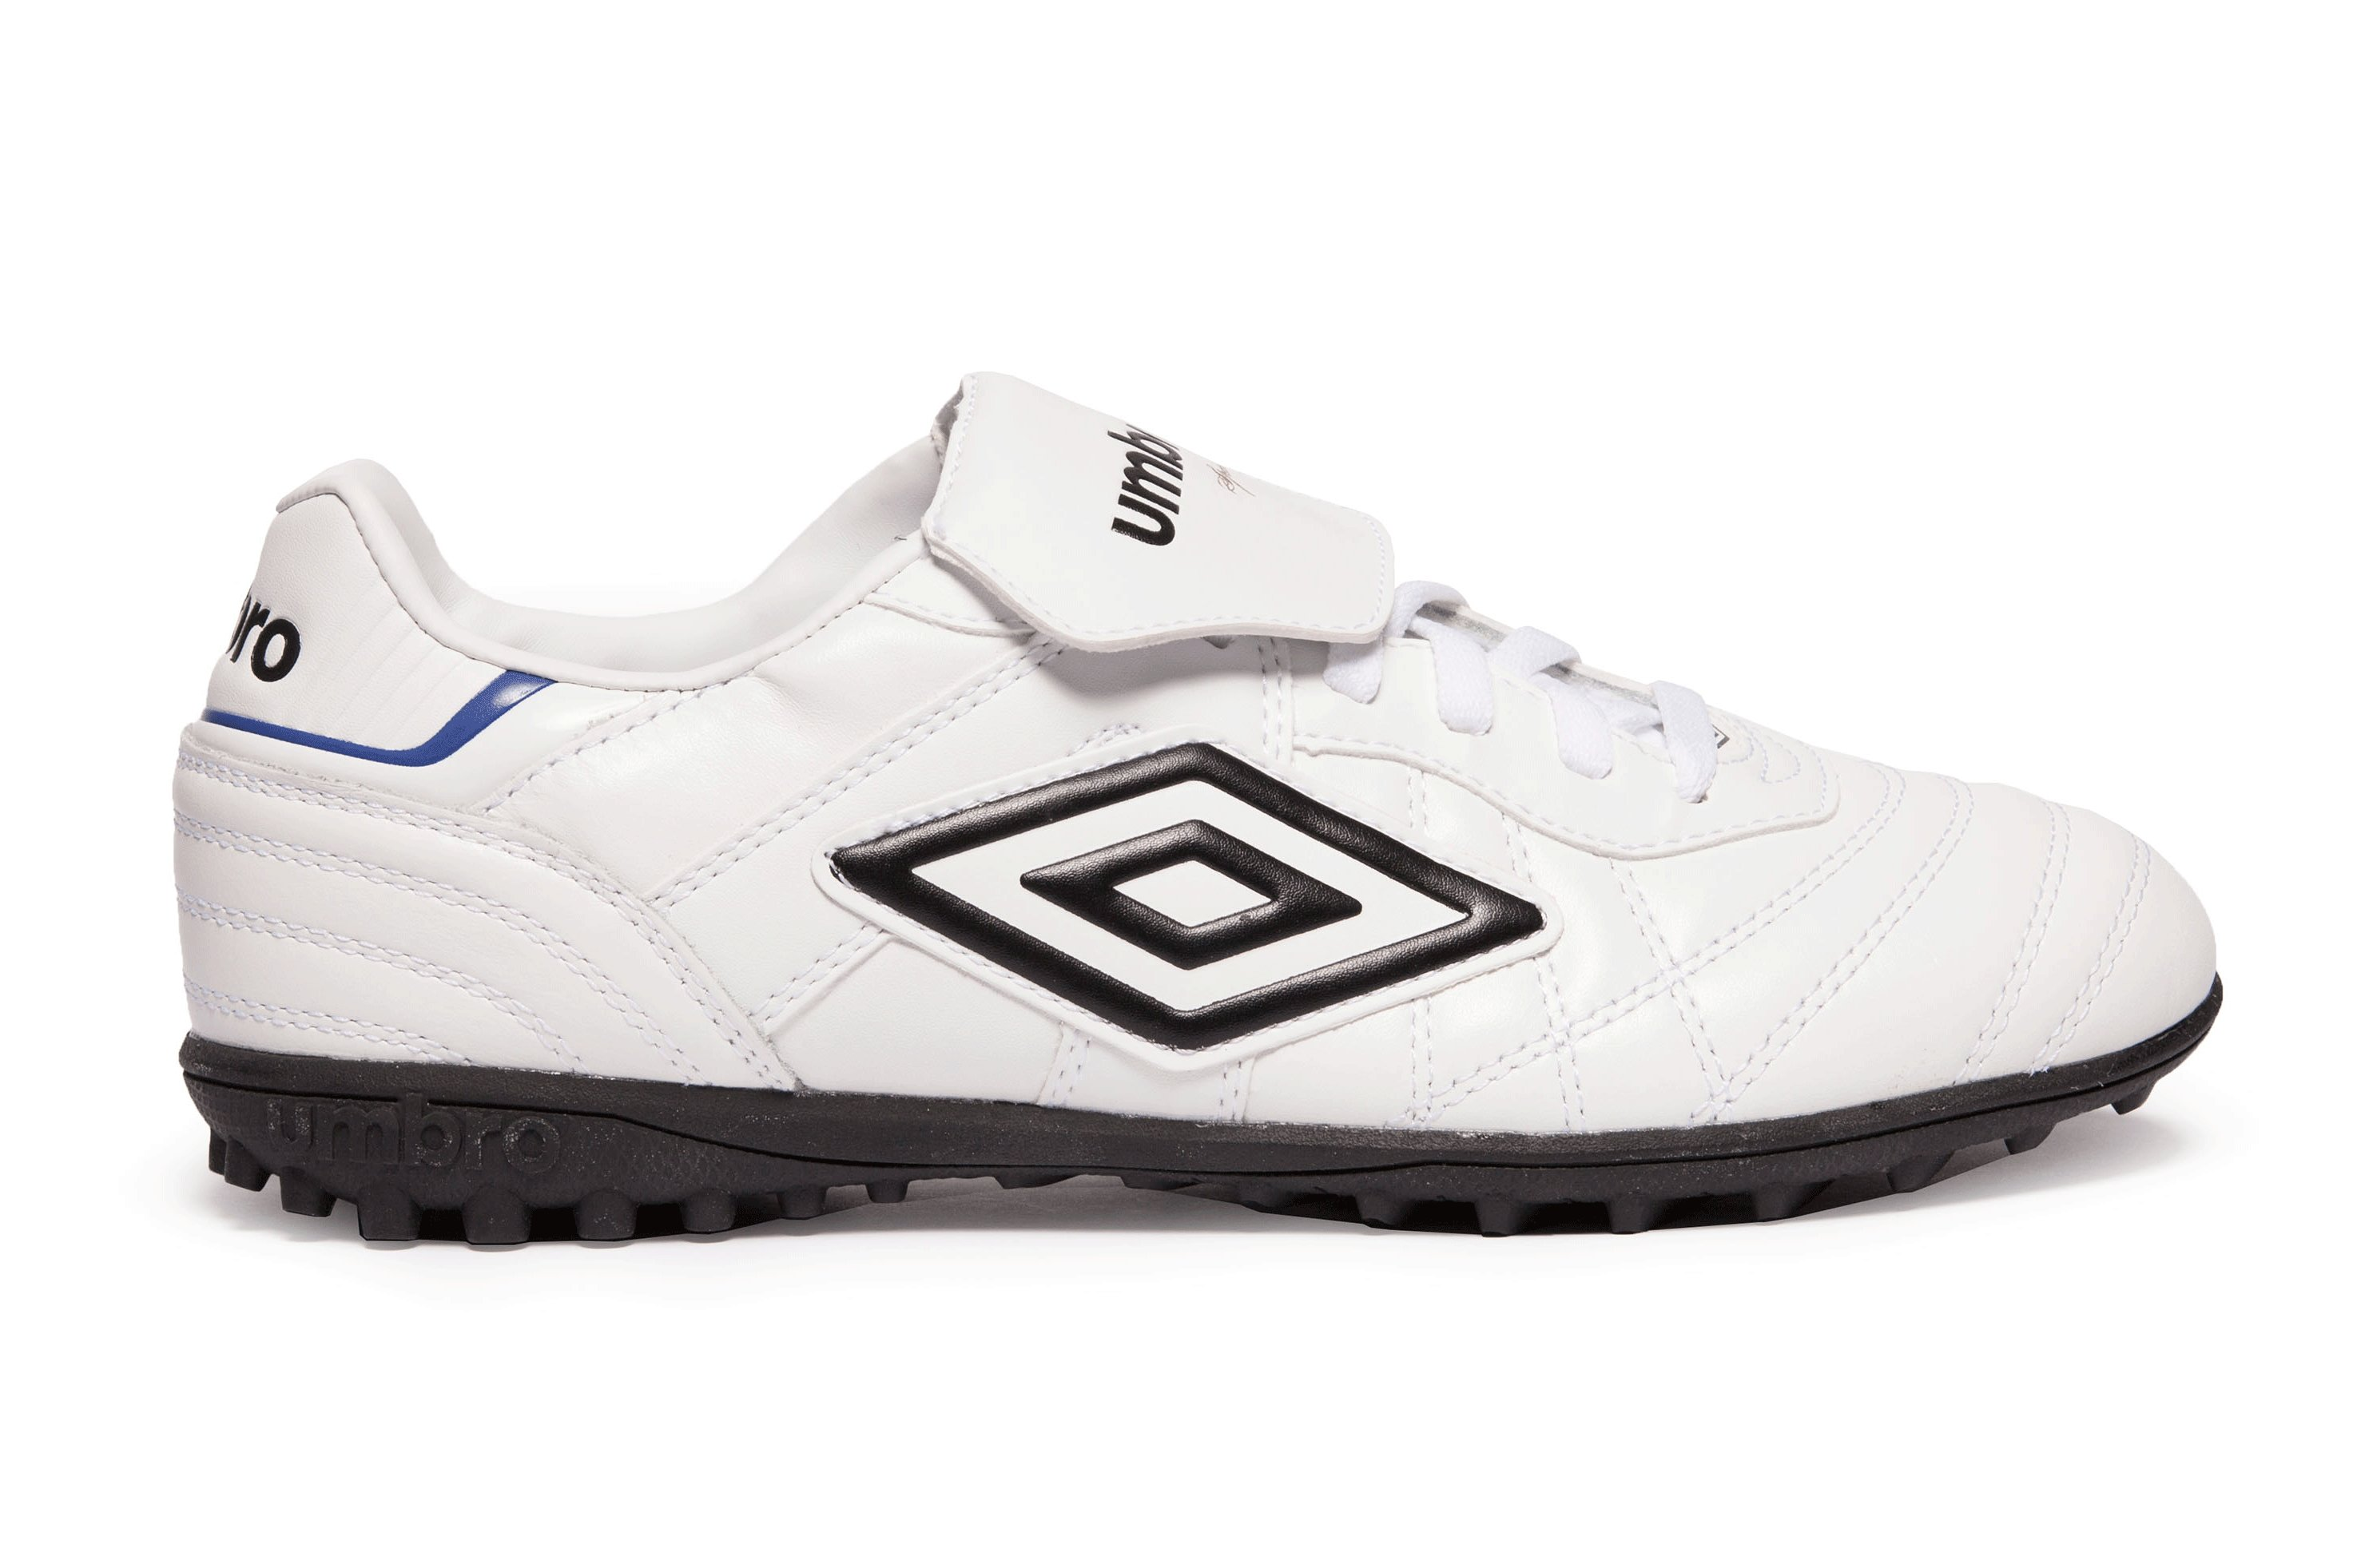 View the SPECIALI ETERNAL PREMIER - ASTRO TURF TRAINERS from the Womenswear collection